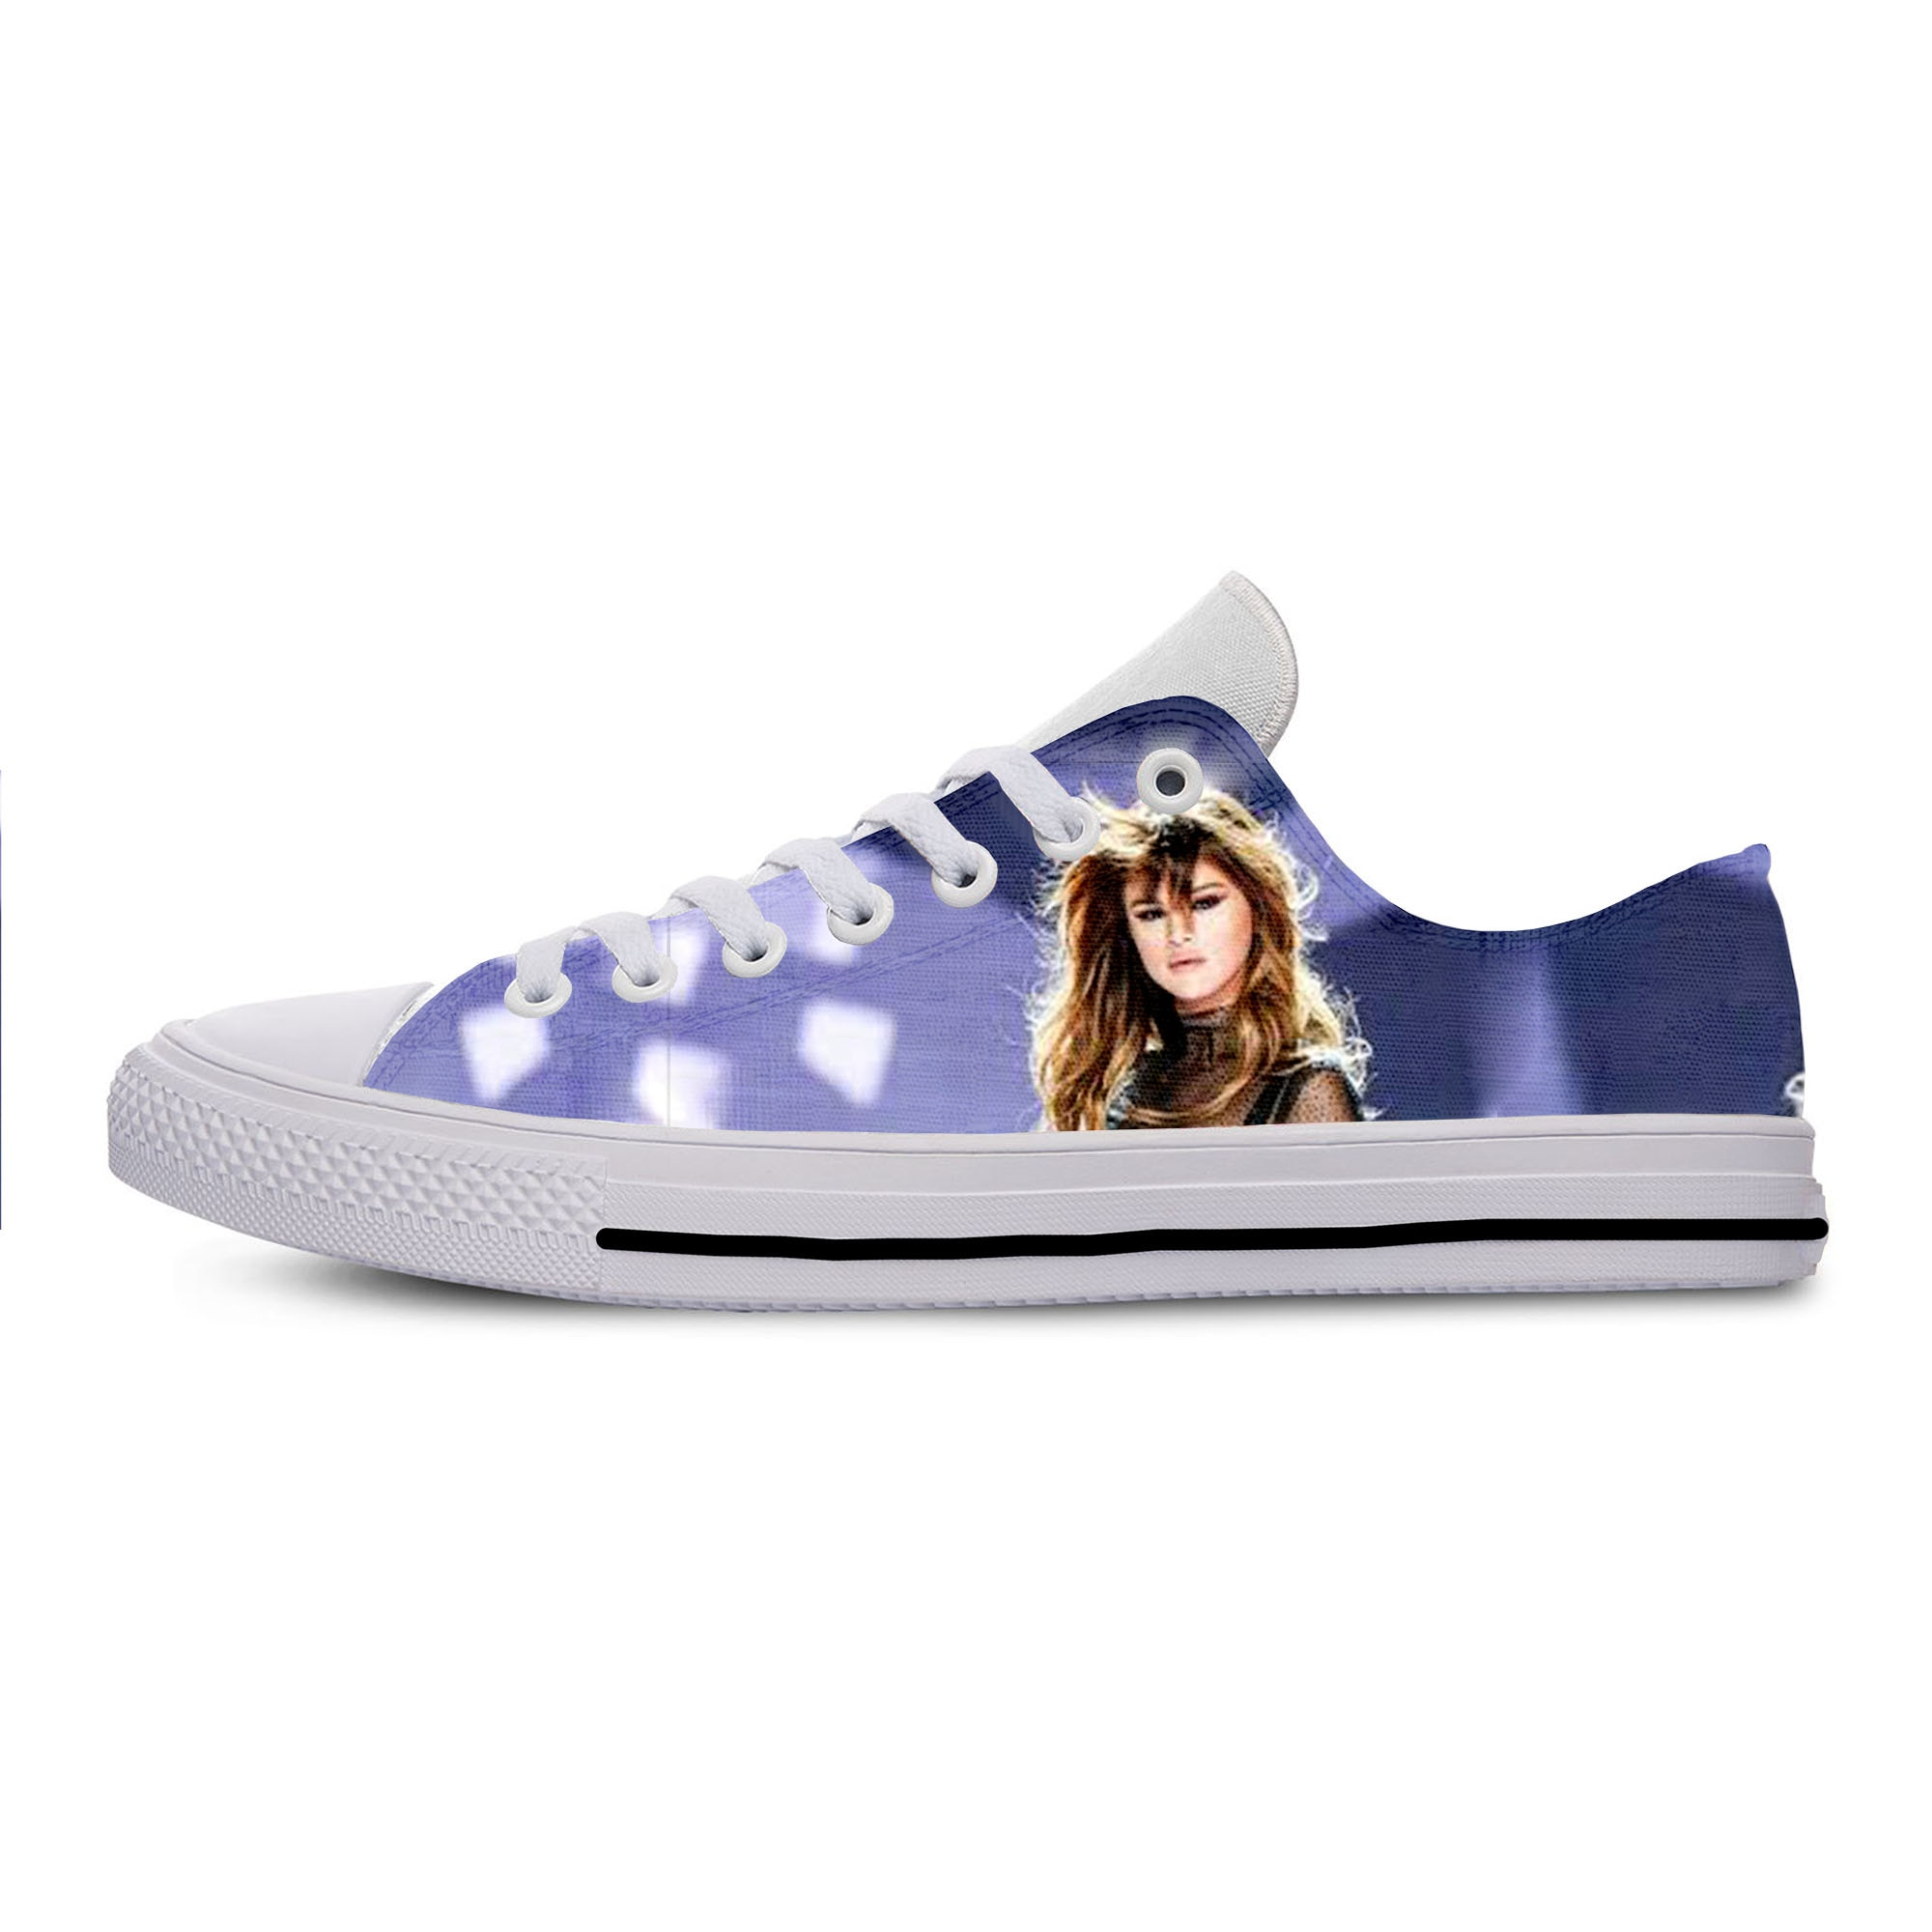 2019 Hot Cool Fashion Funny Summer High Quality Sneakers Handiness Casual Shoes 3D Printed For Men Women Selena Gomez